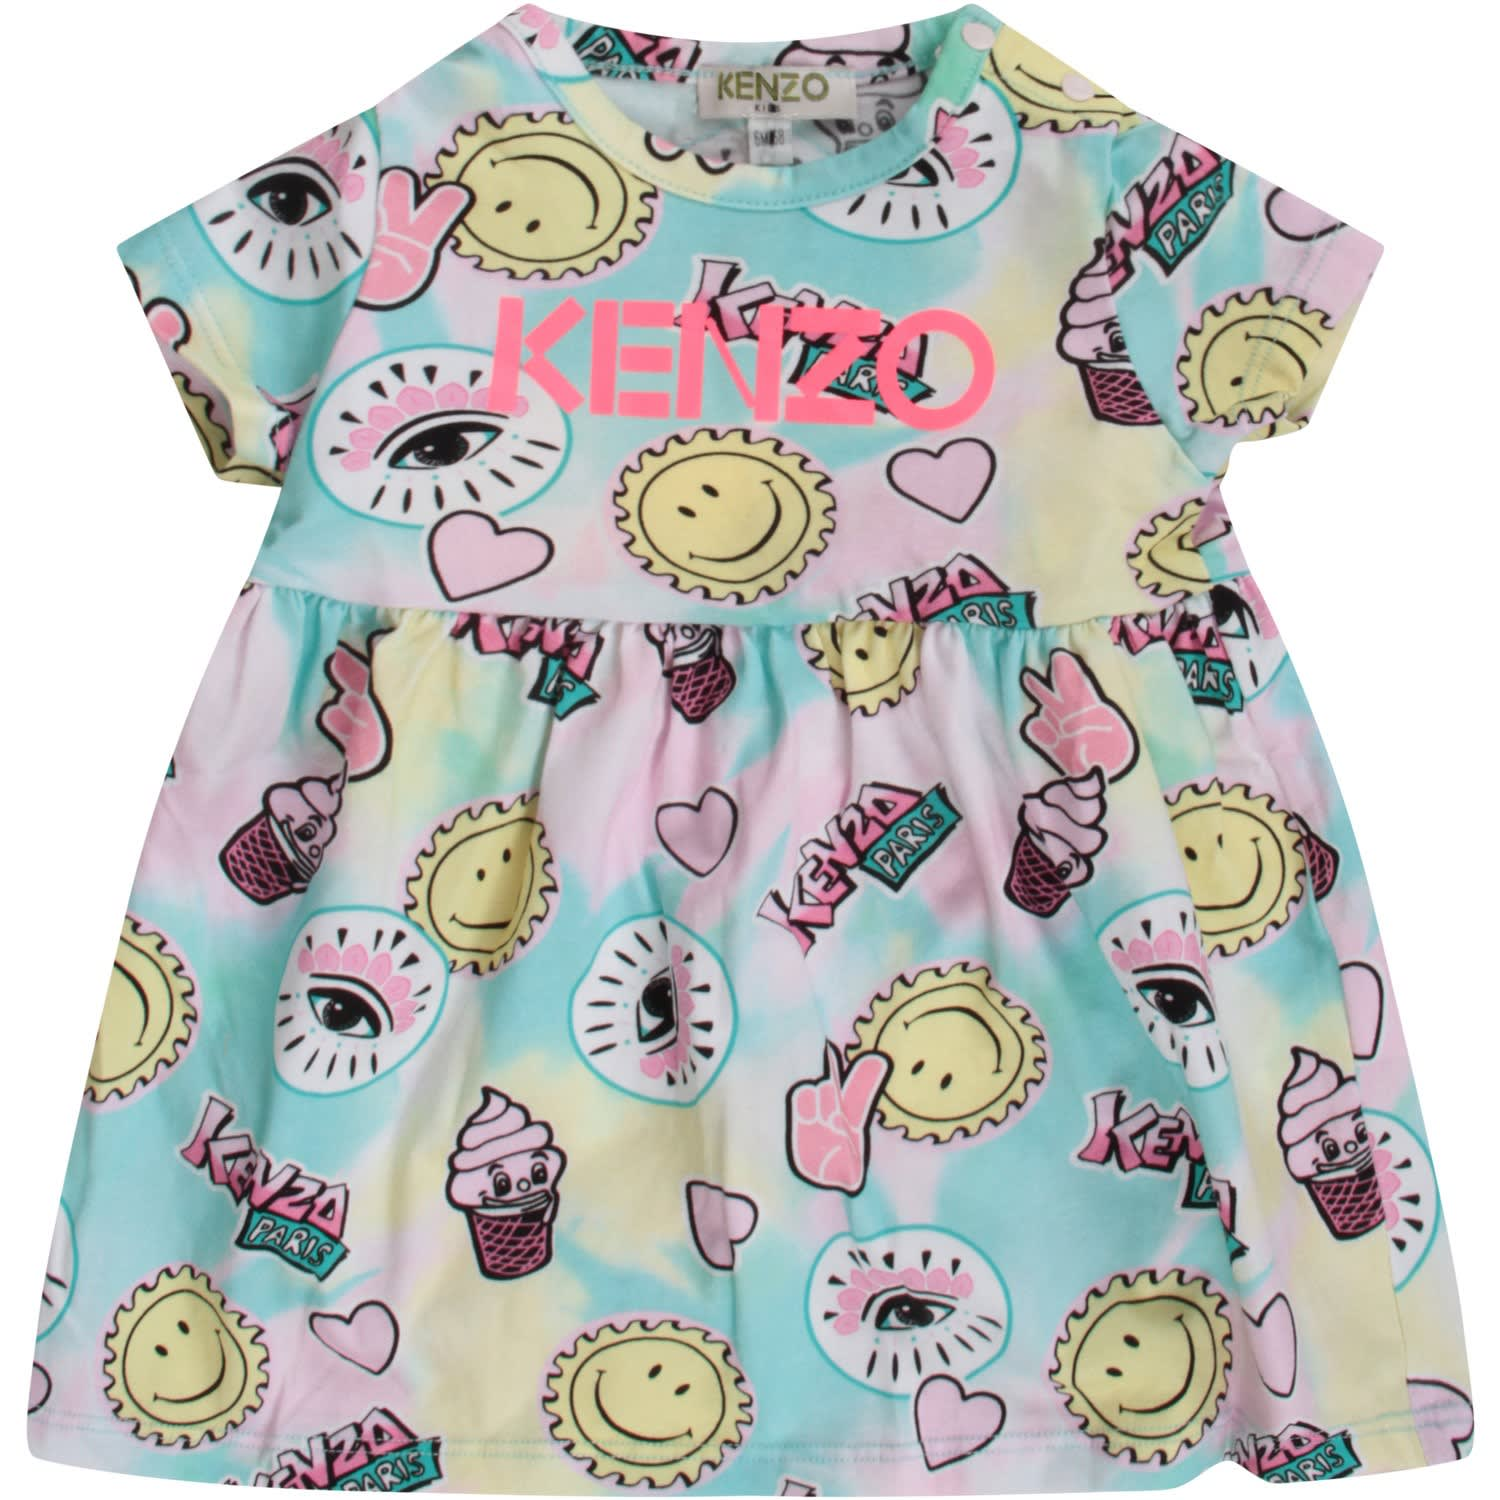 Buy Kenzo Kids Multicolor Babygirl Dress With Neon Fuchsia Logo online, shop Kenzo Kids with free shipping